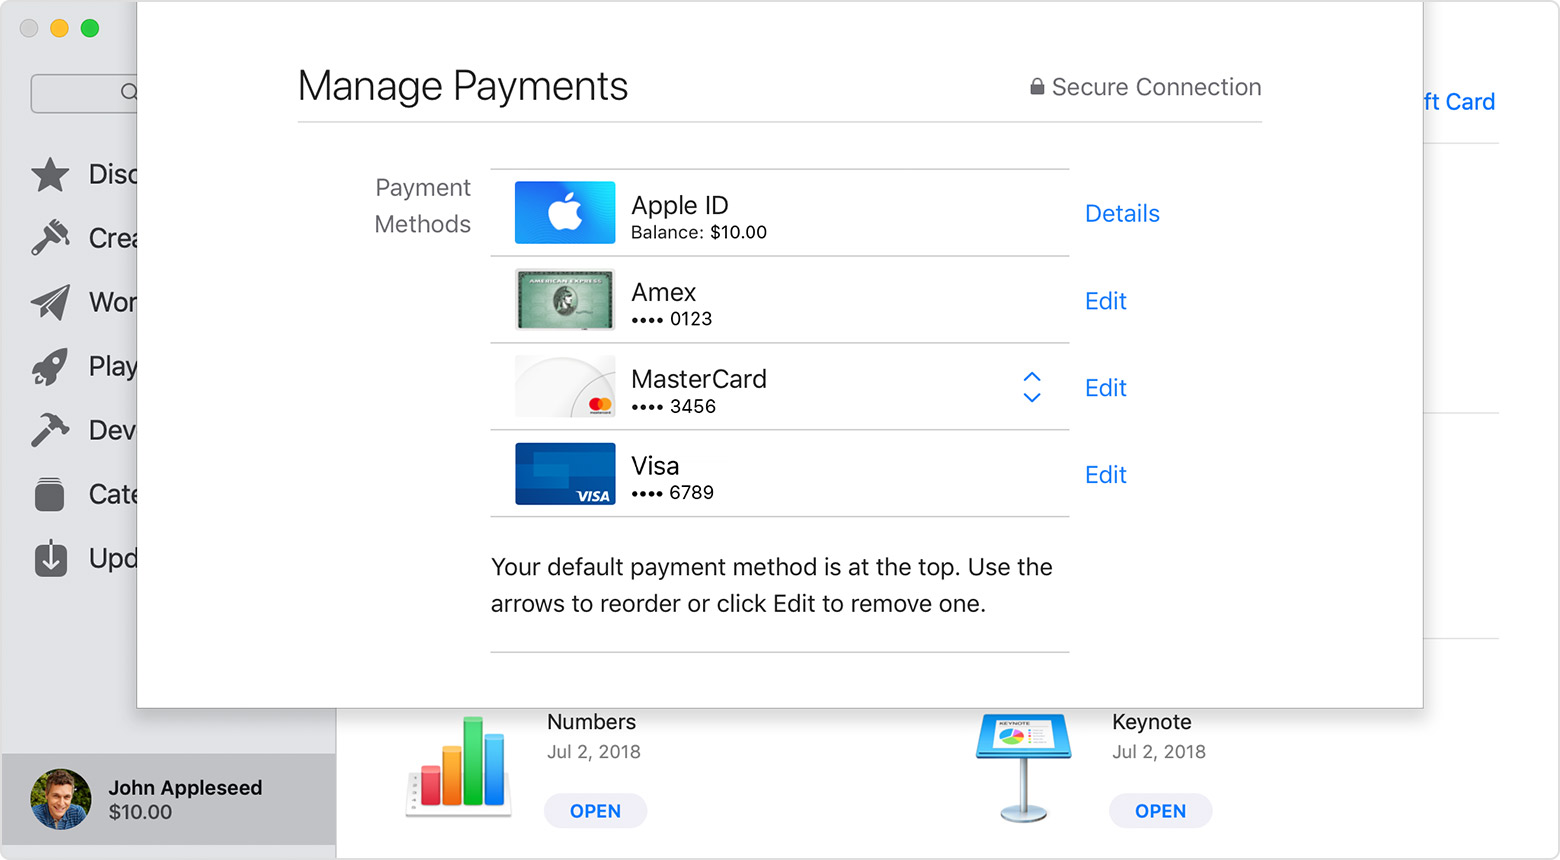 Manage Payments page in App Store showing Apple ID and some credit cards.